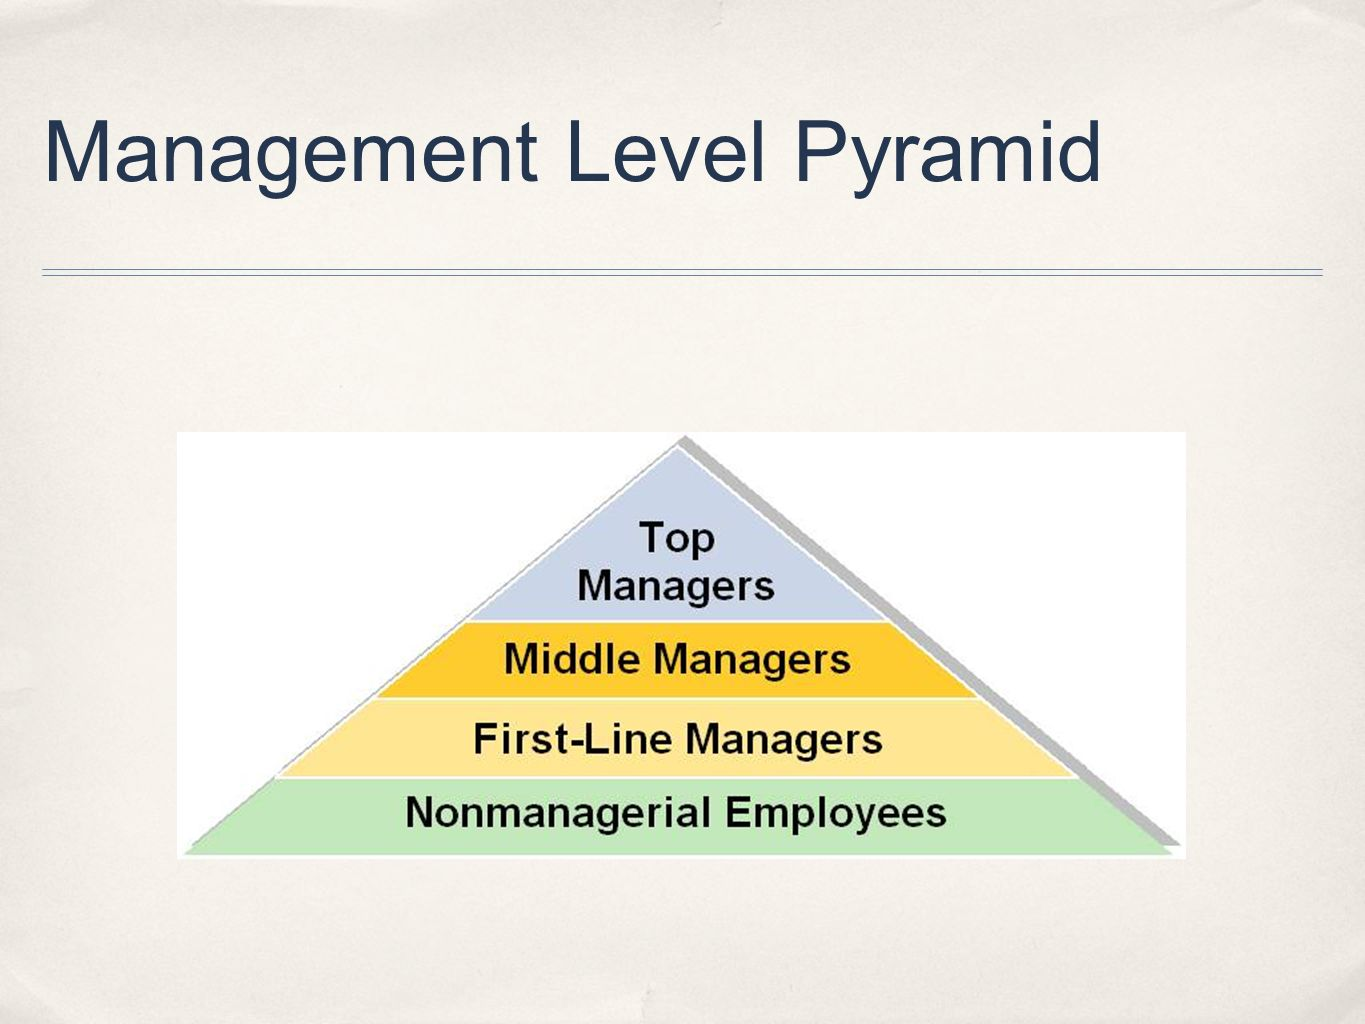 Management Level Pyramid